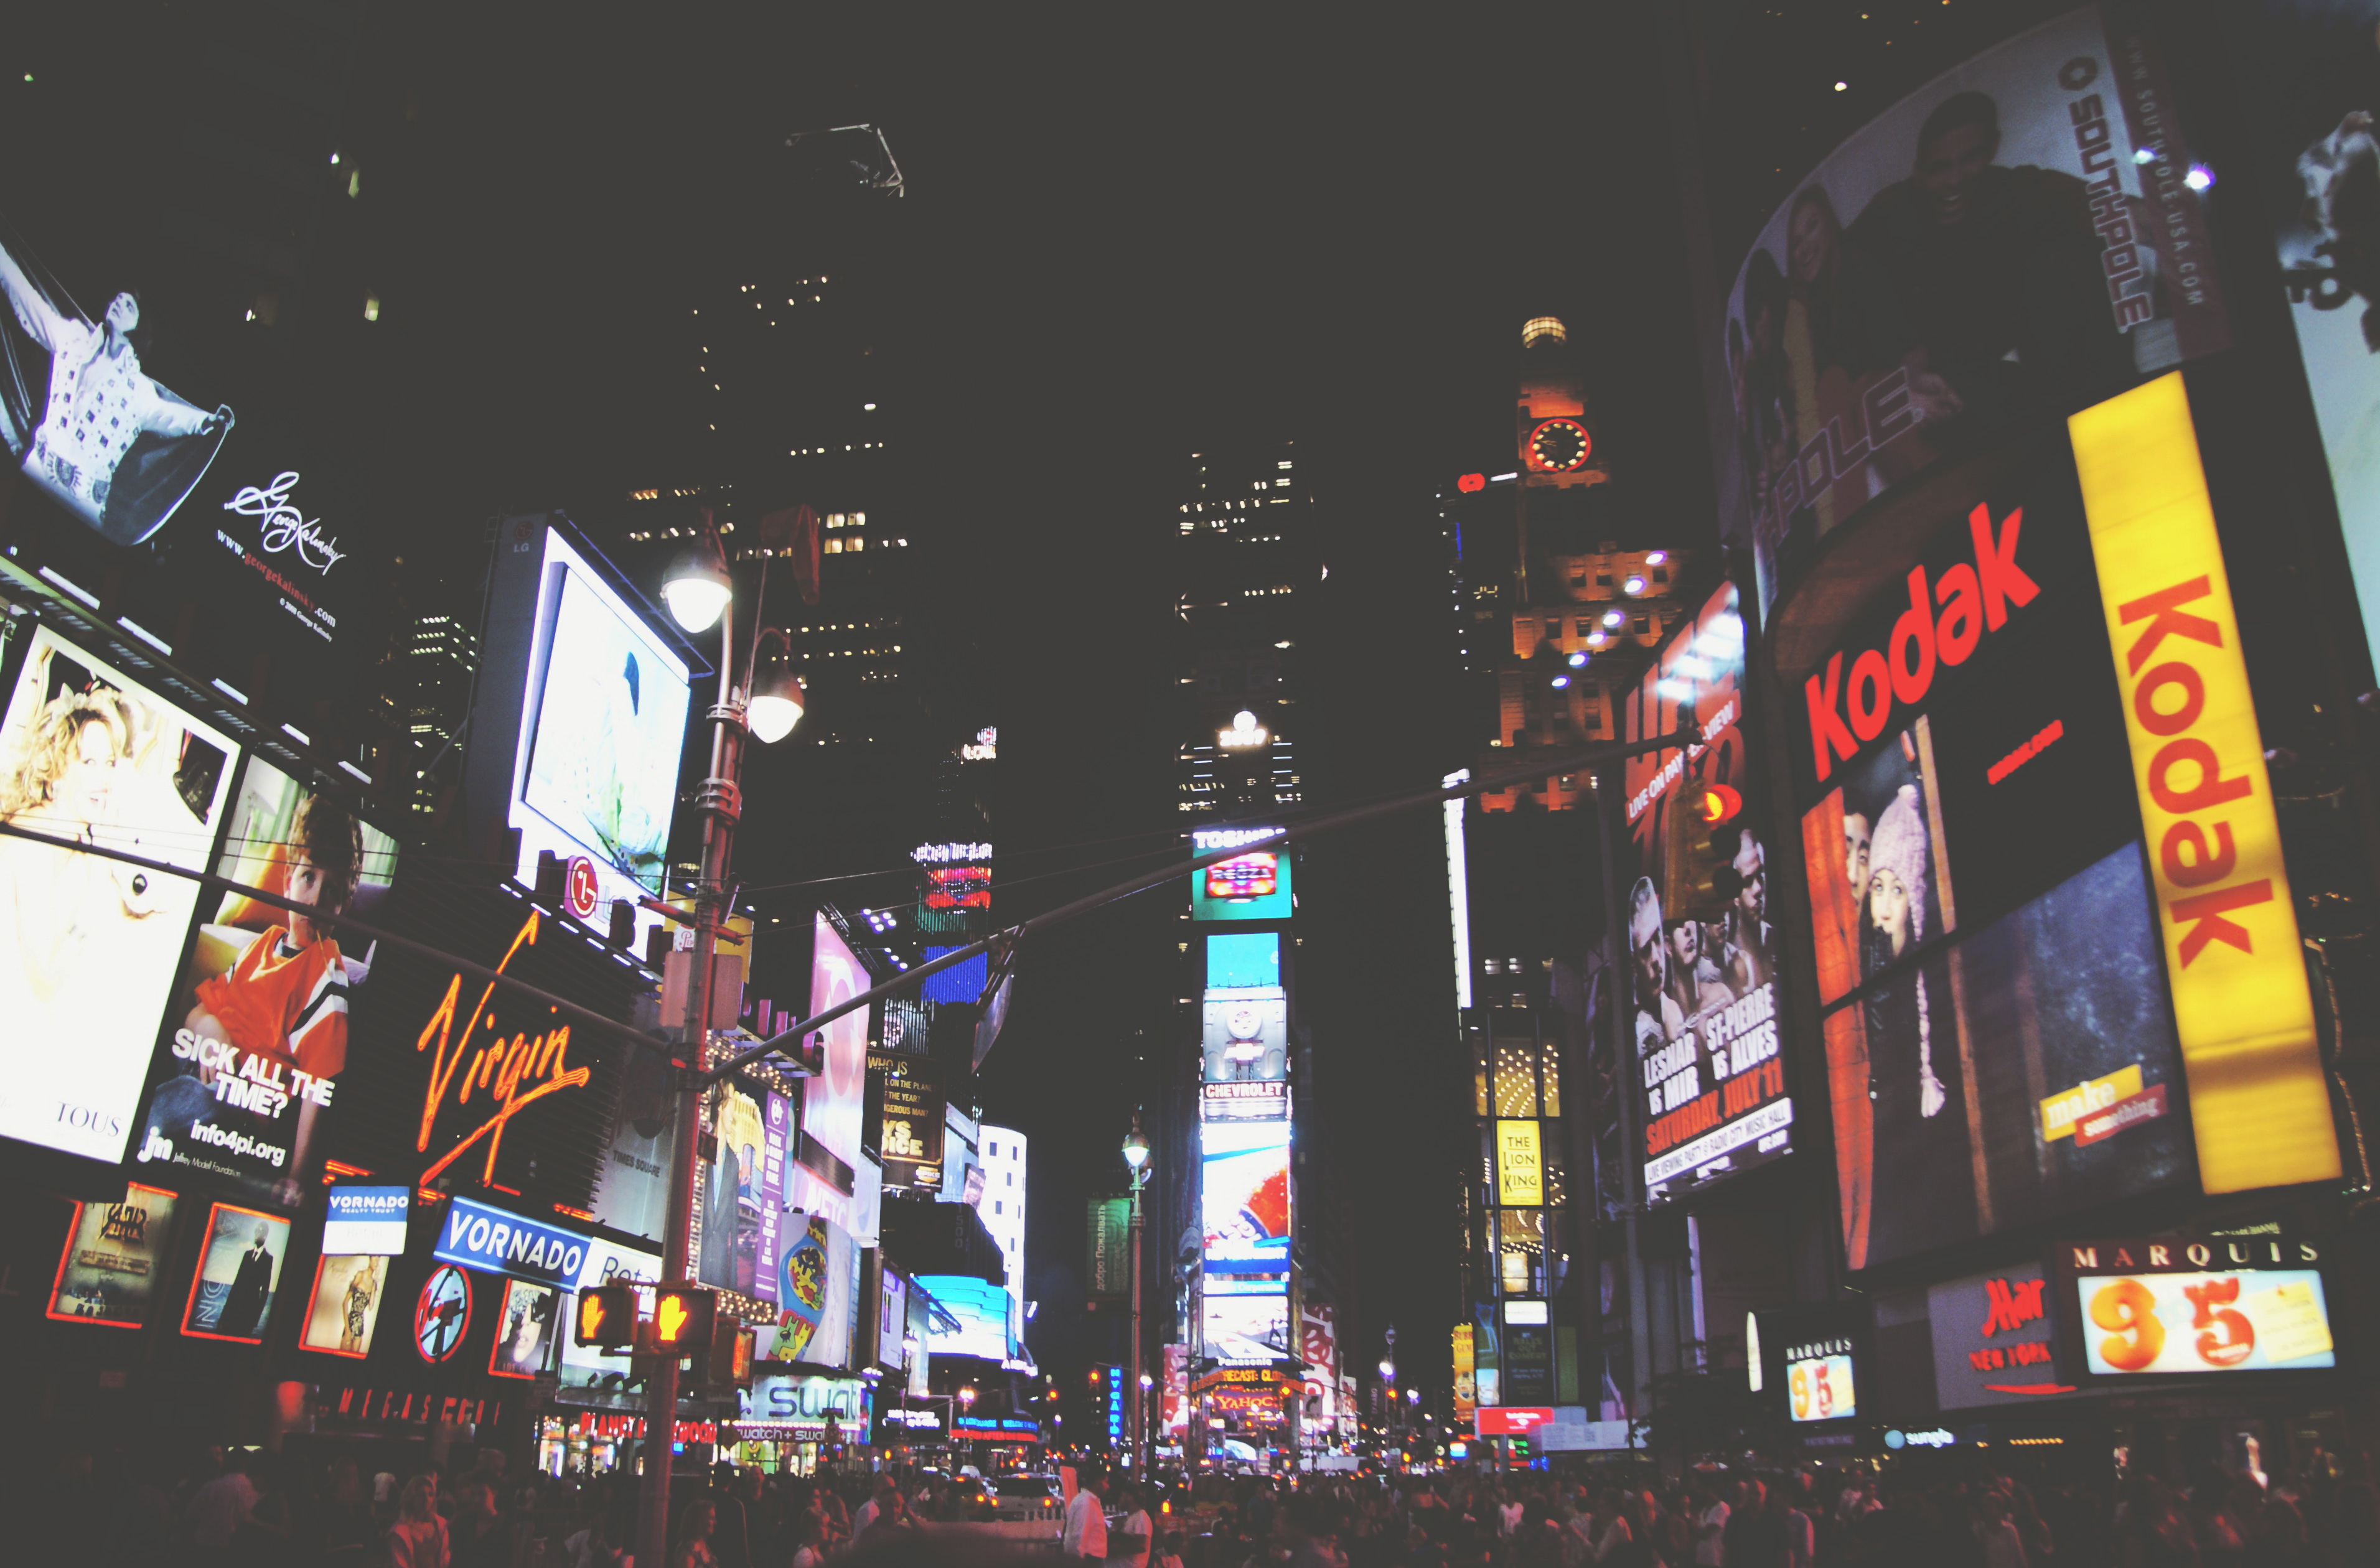 times square to depict broker marketing